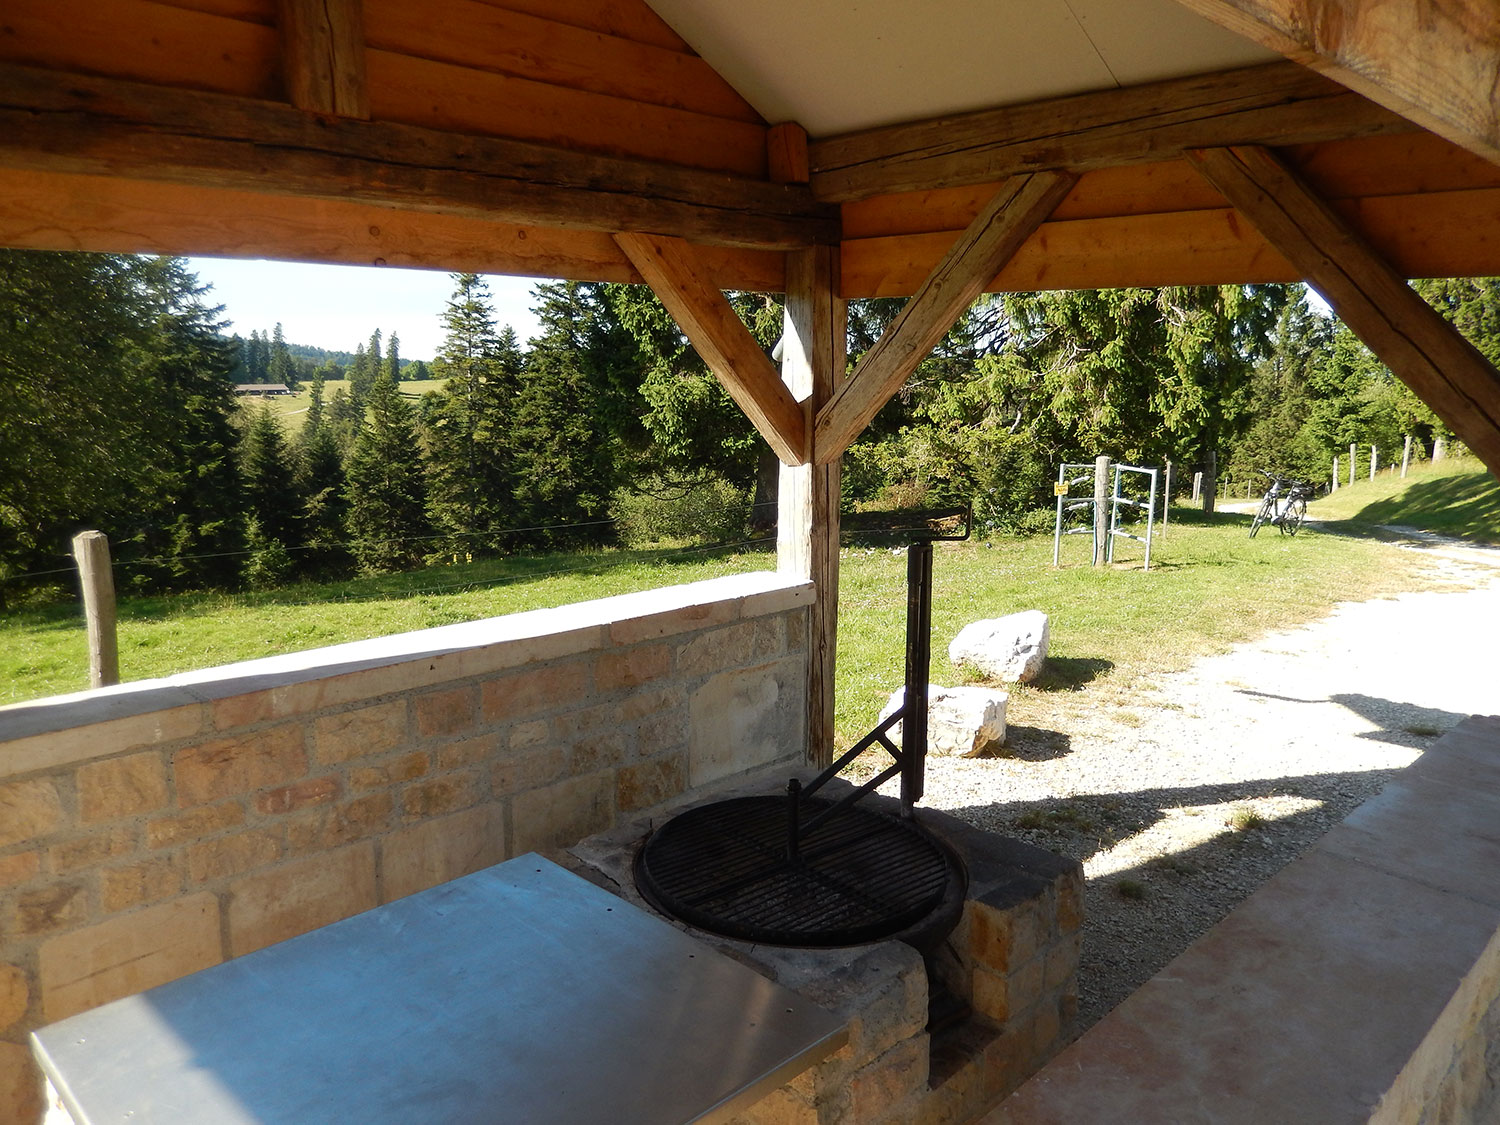 cabane-forestiere-saulcy-jura-suisse-3